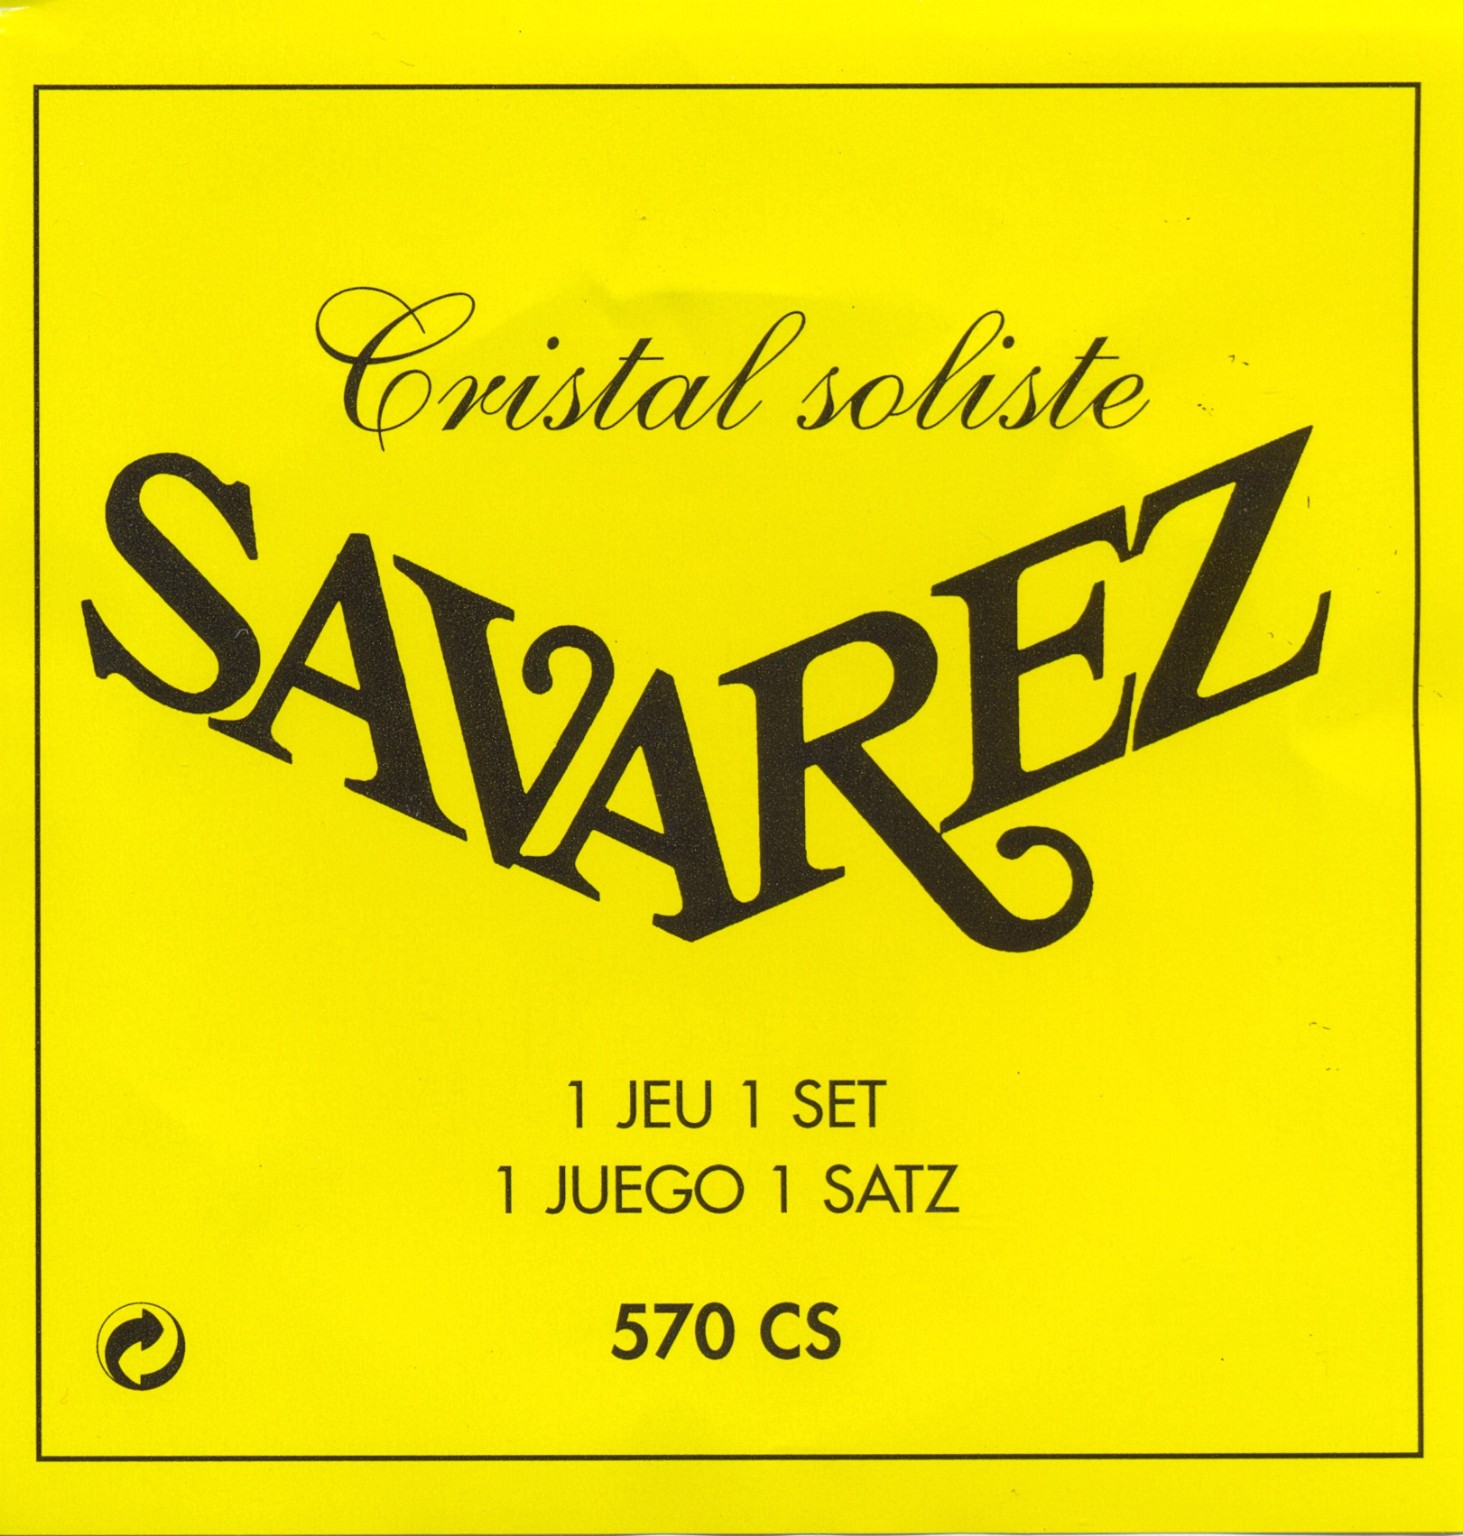 Savarez 570 CS cristal soliste Konzertgitarre, extra high tension